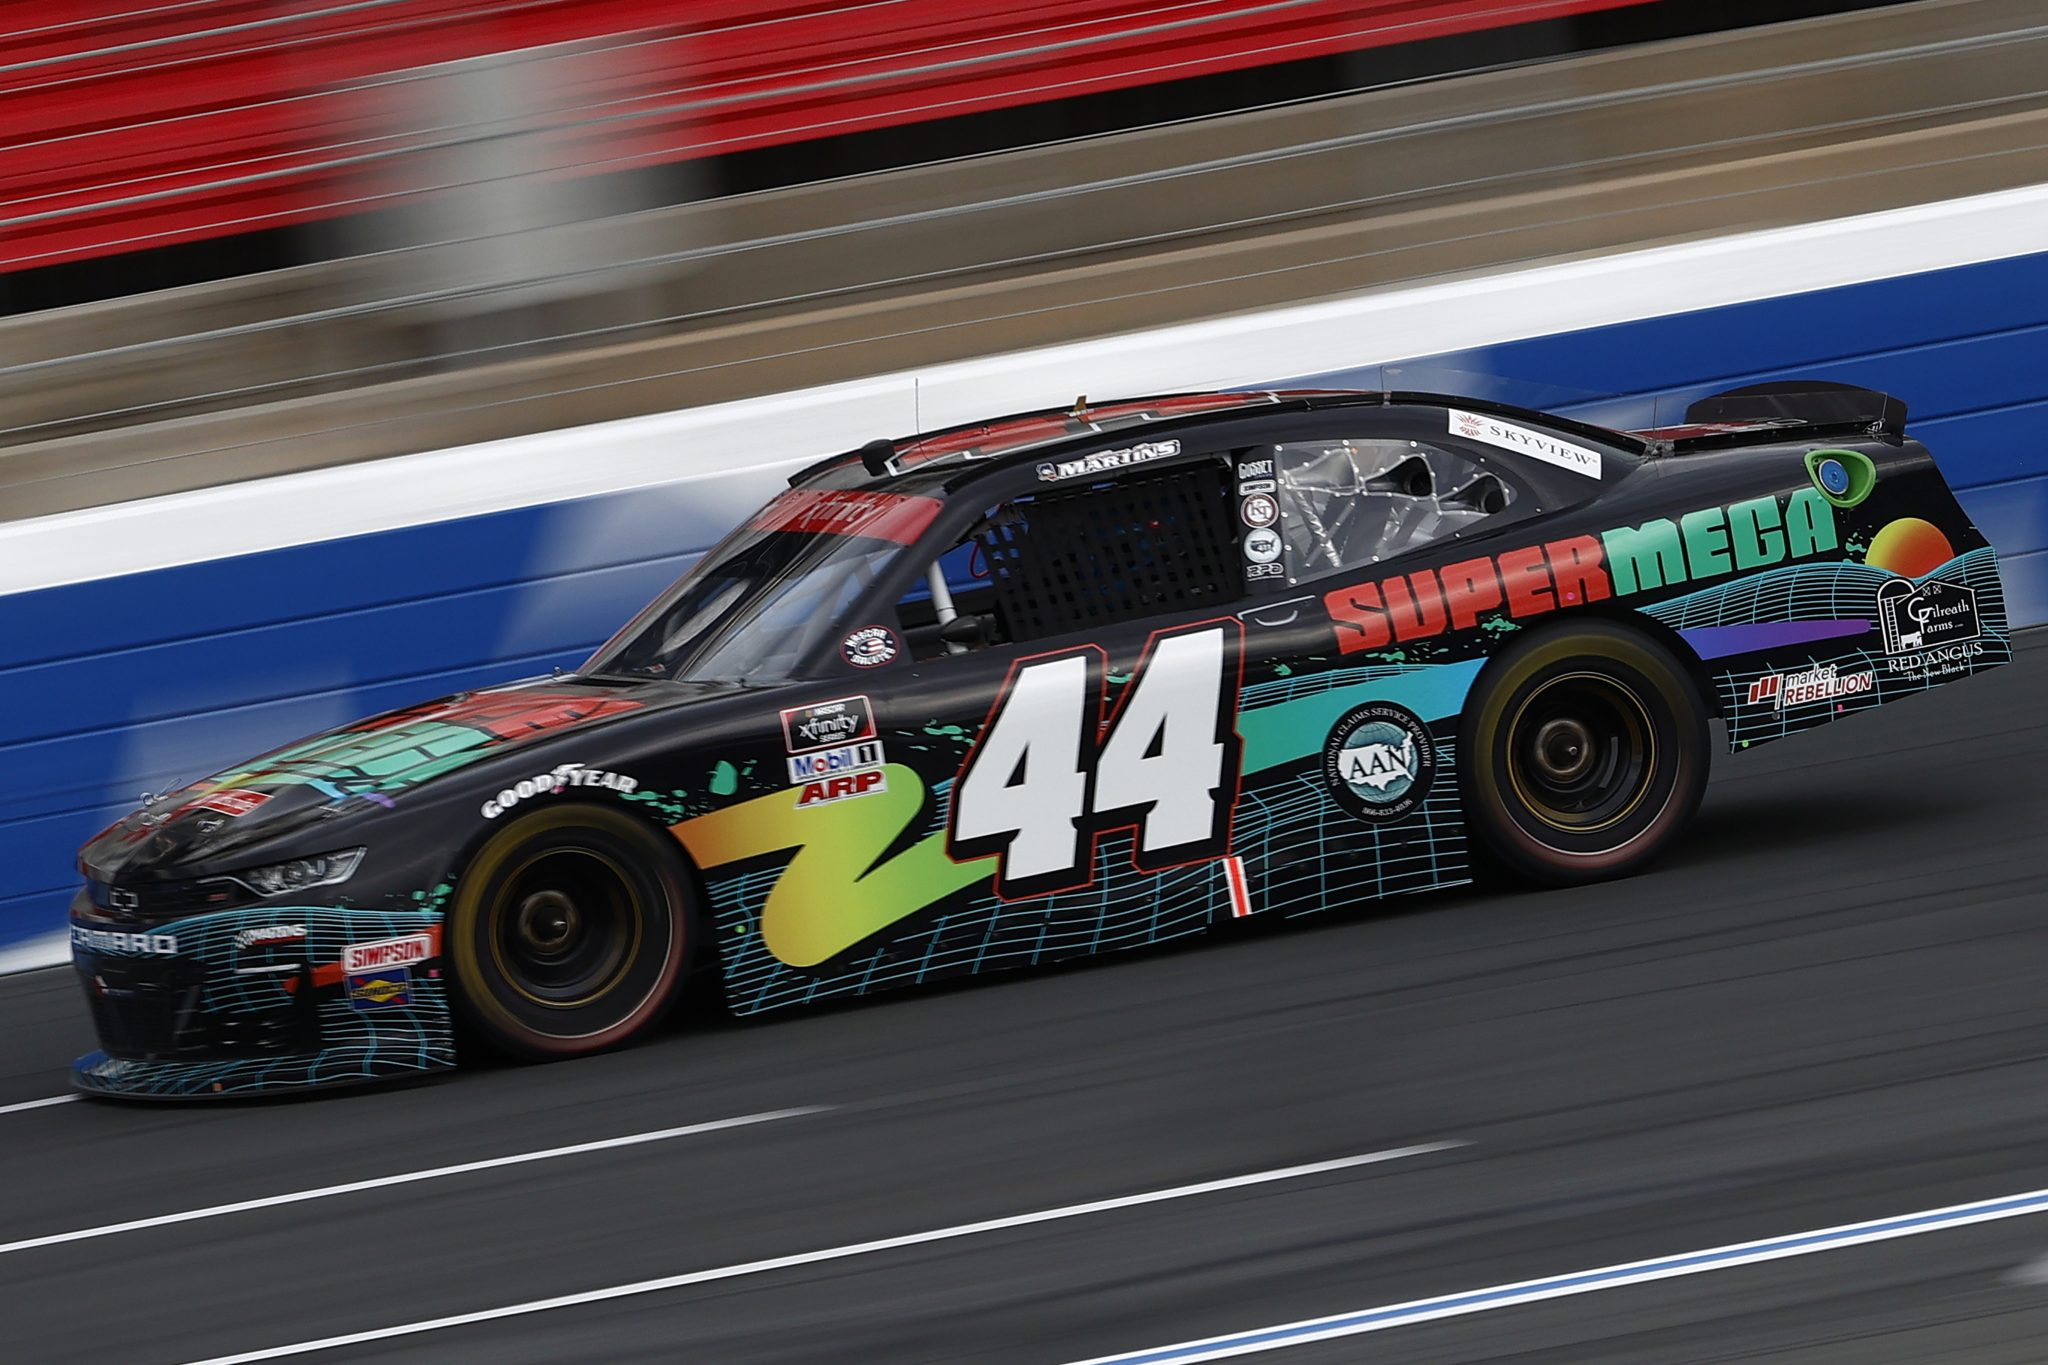 CONCORD, NORTH CAROLINA - MAY 28: Tommy Joe Martins, driver of the #44 Super Mega Chevrolet, drives during practice for the NASCAR Xfinity Series Alsco Uniforms 300 at Charlotte Motor Speedway on May 28, 2021 in Concord, North Carolina. (Photo by Maddie Meyer/Getty Images) | Getty Images